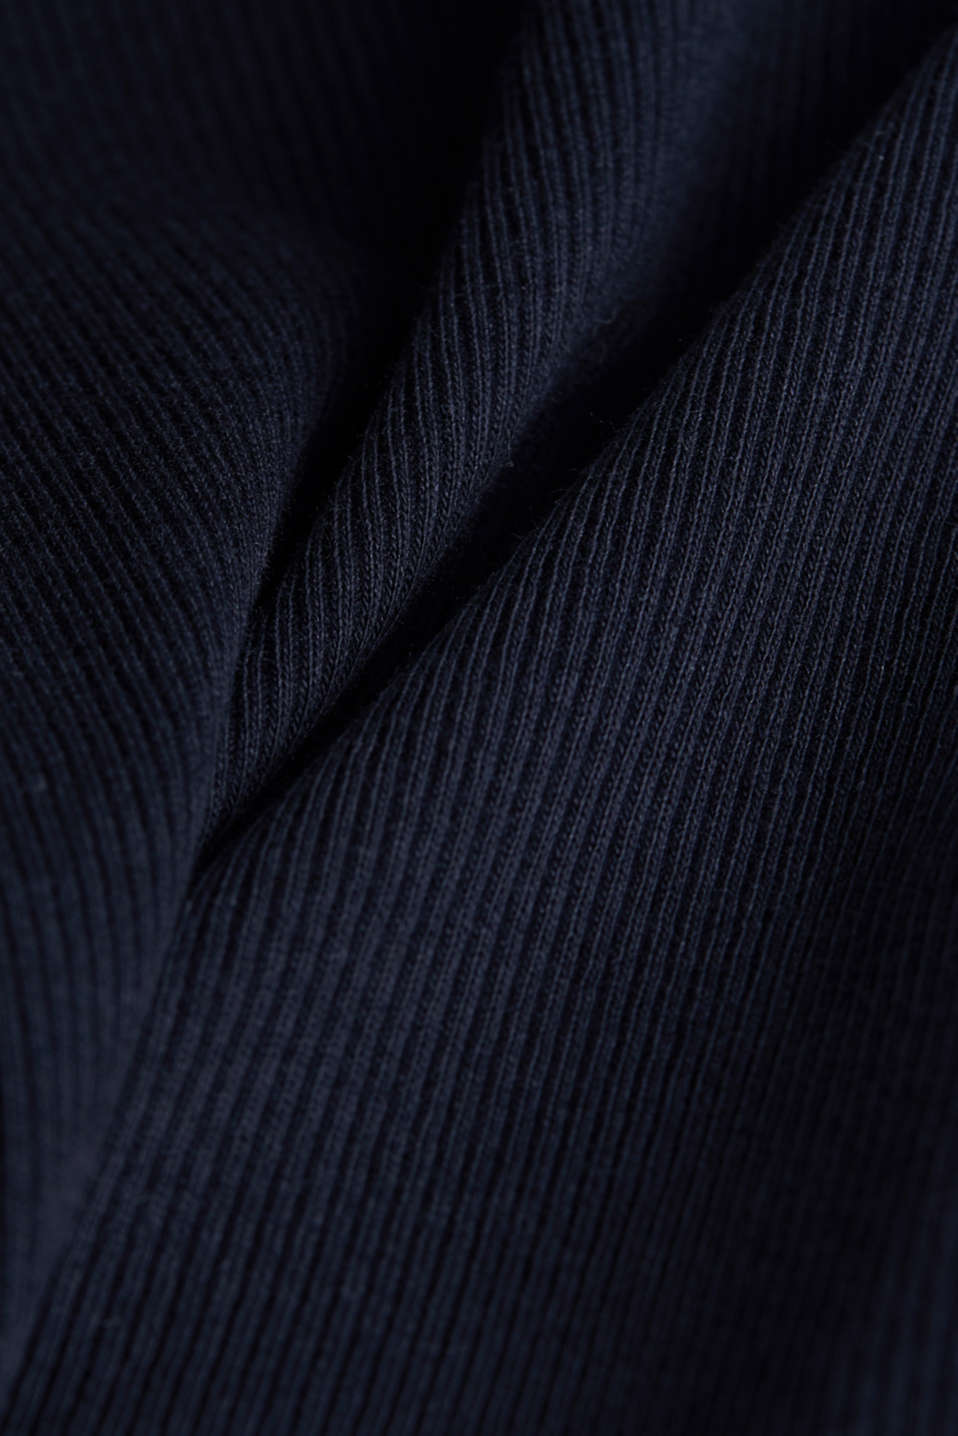 Ribbed jersey sleeveless top, BLACK, detail image number 4